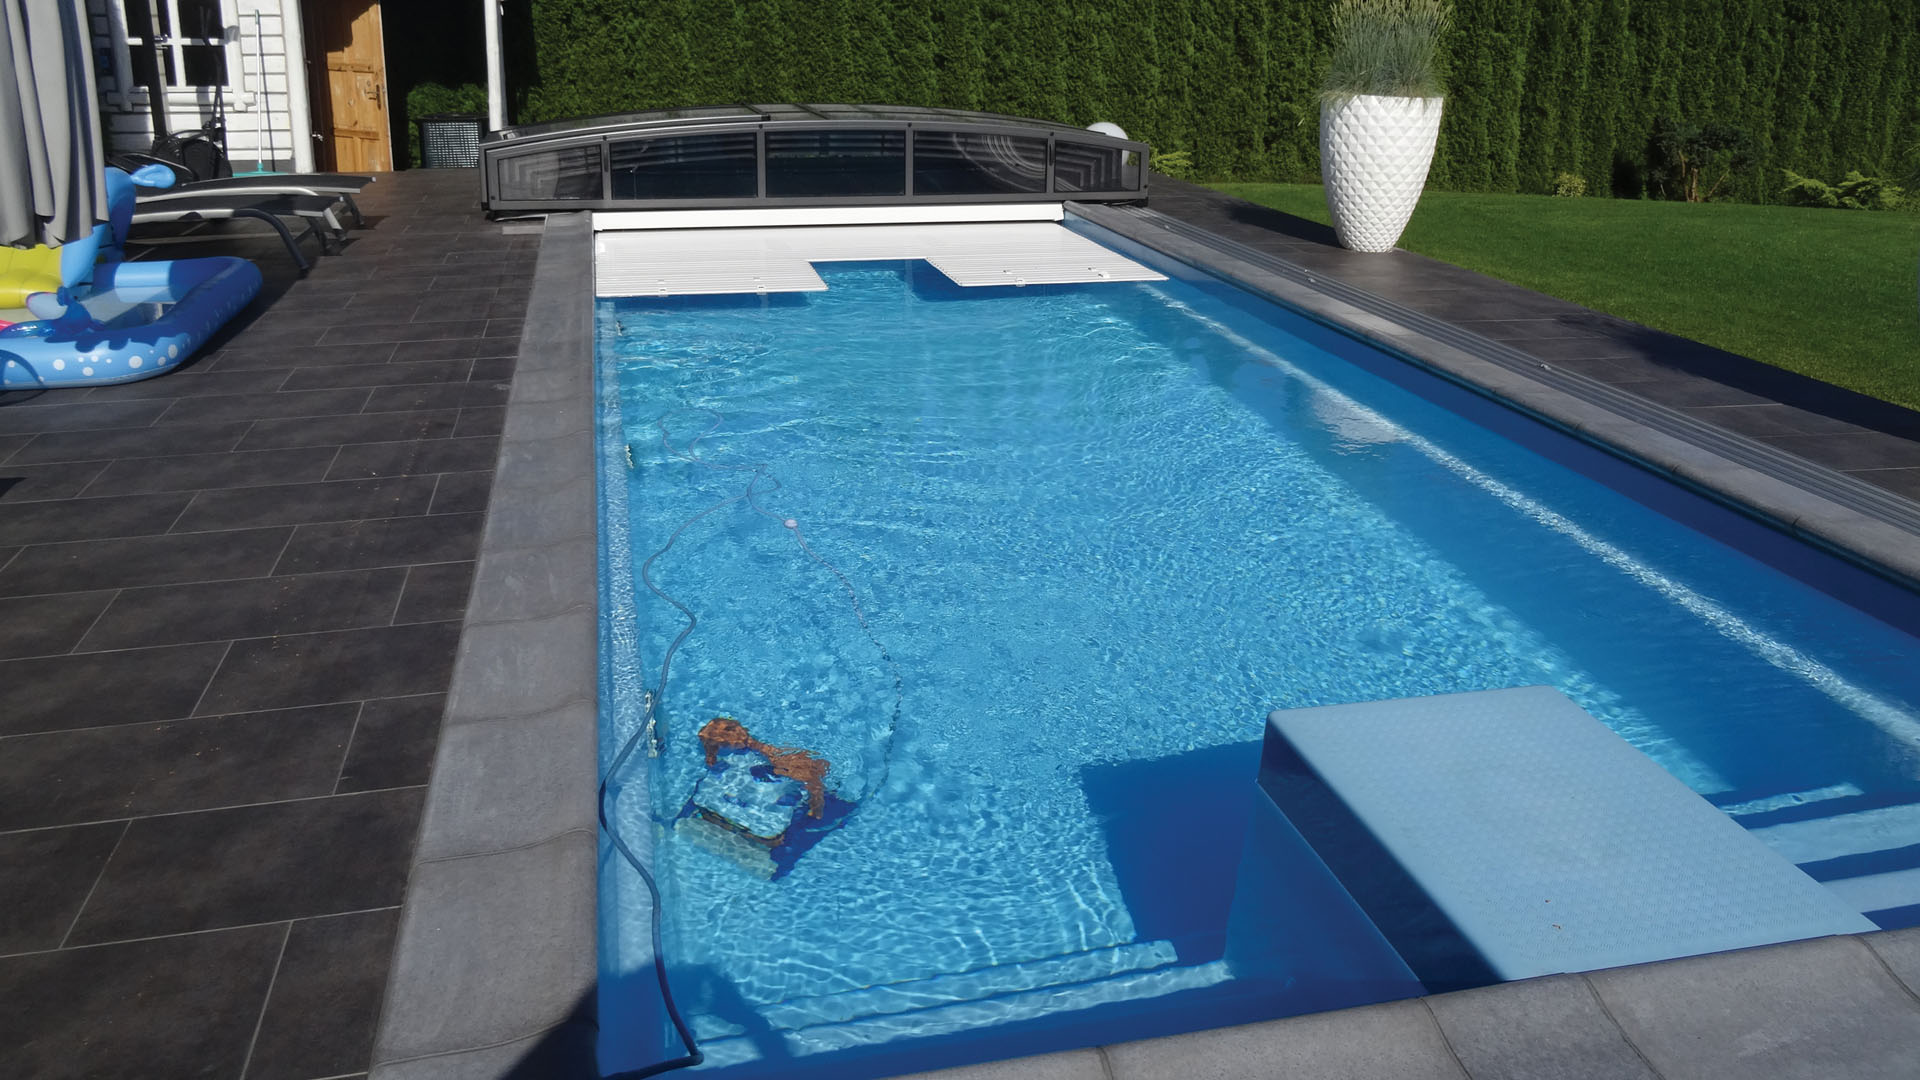 saturn long polyester reinforced fibreglass patio pool with safety cover